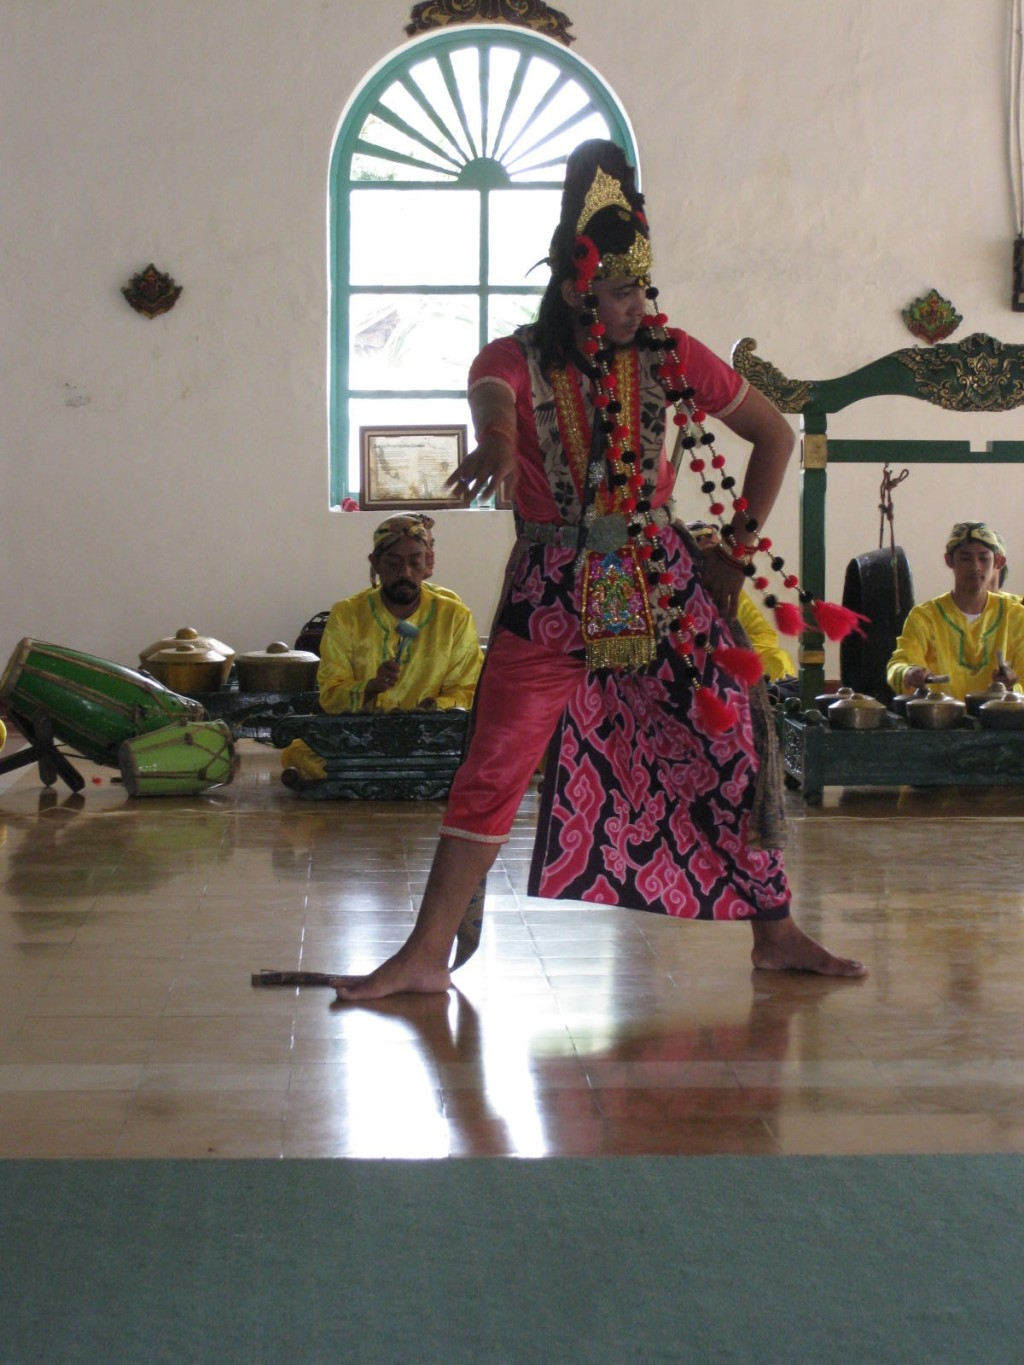 Excursions treat you to traditional Indonesian dance and music. * Photo credit: Heidi Sarna